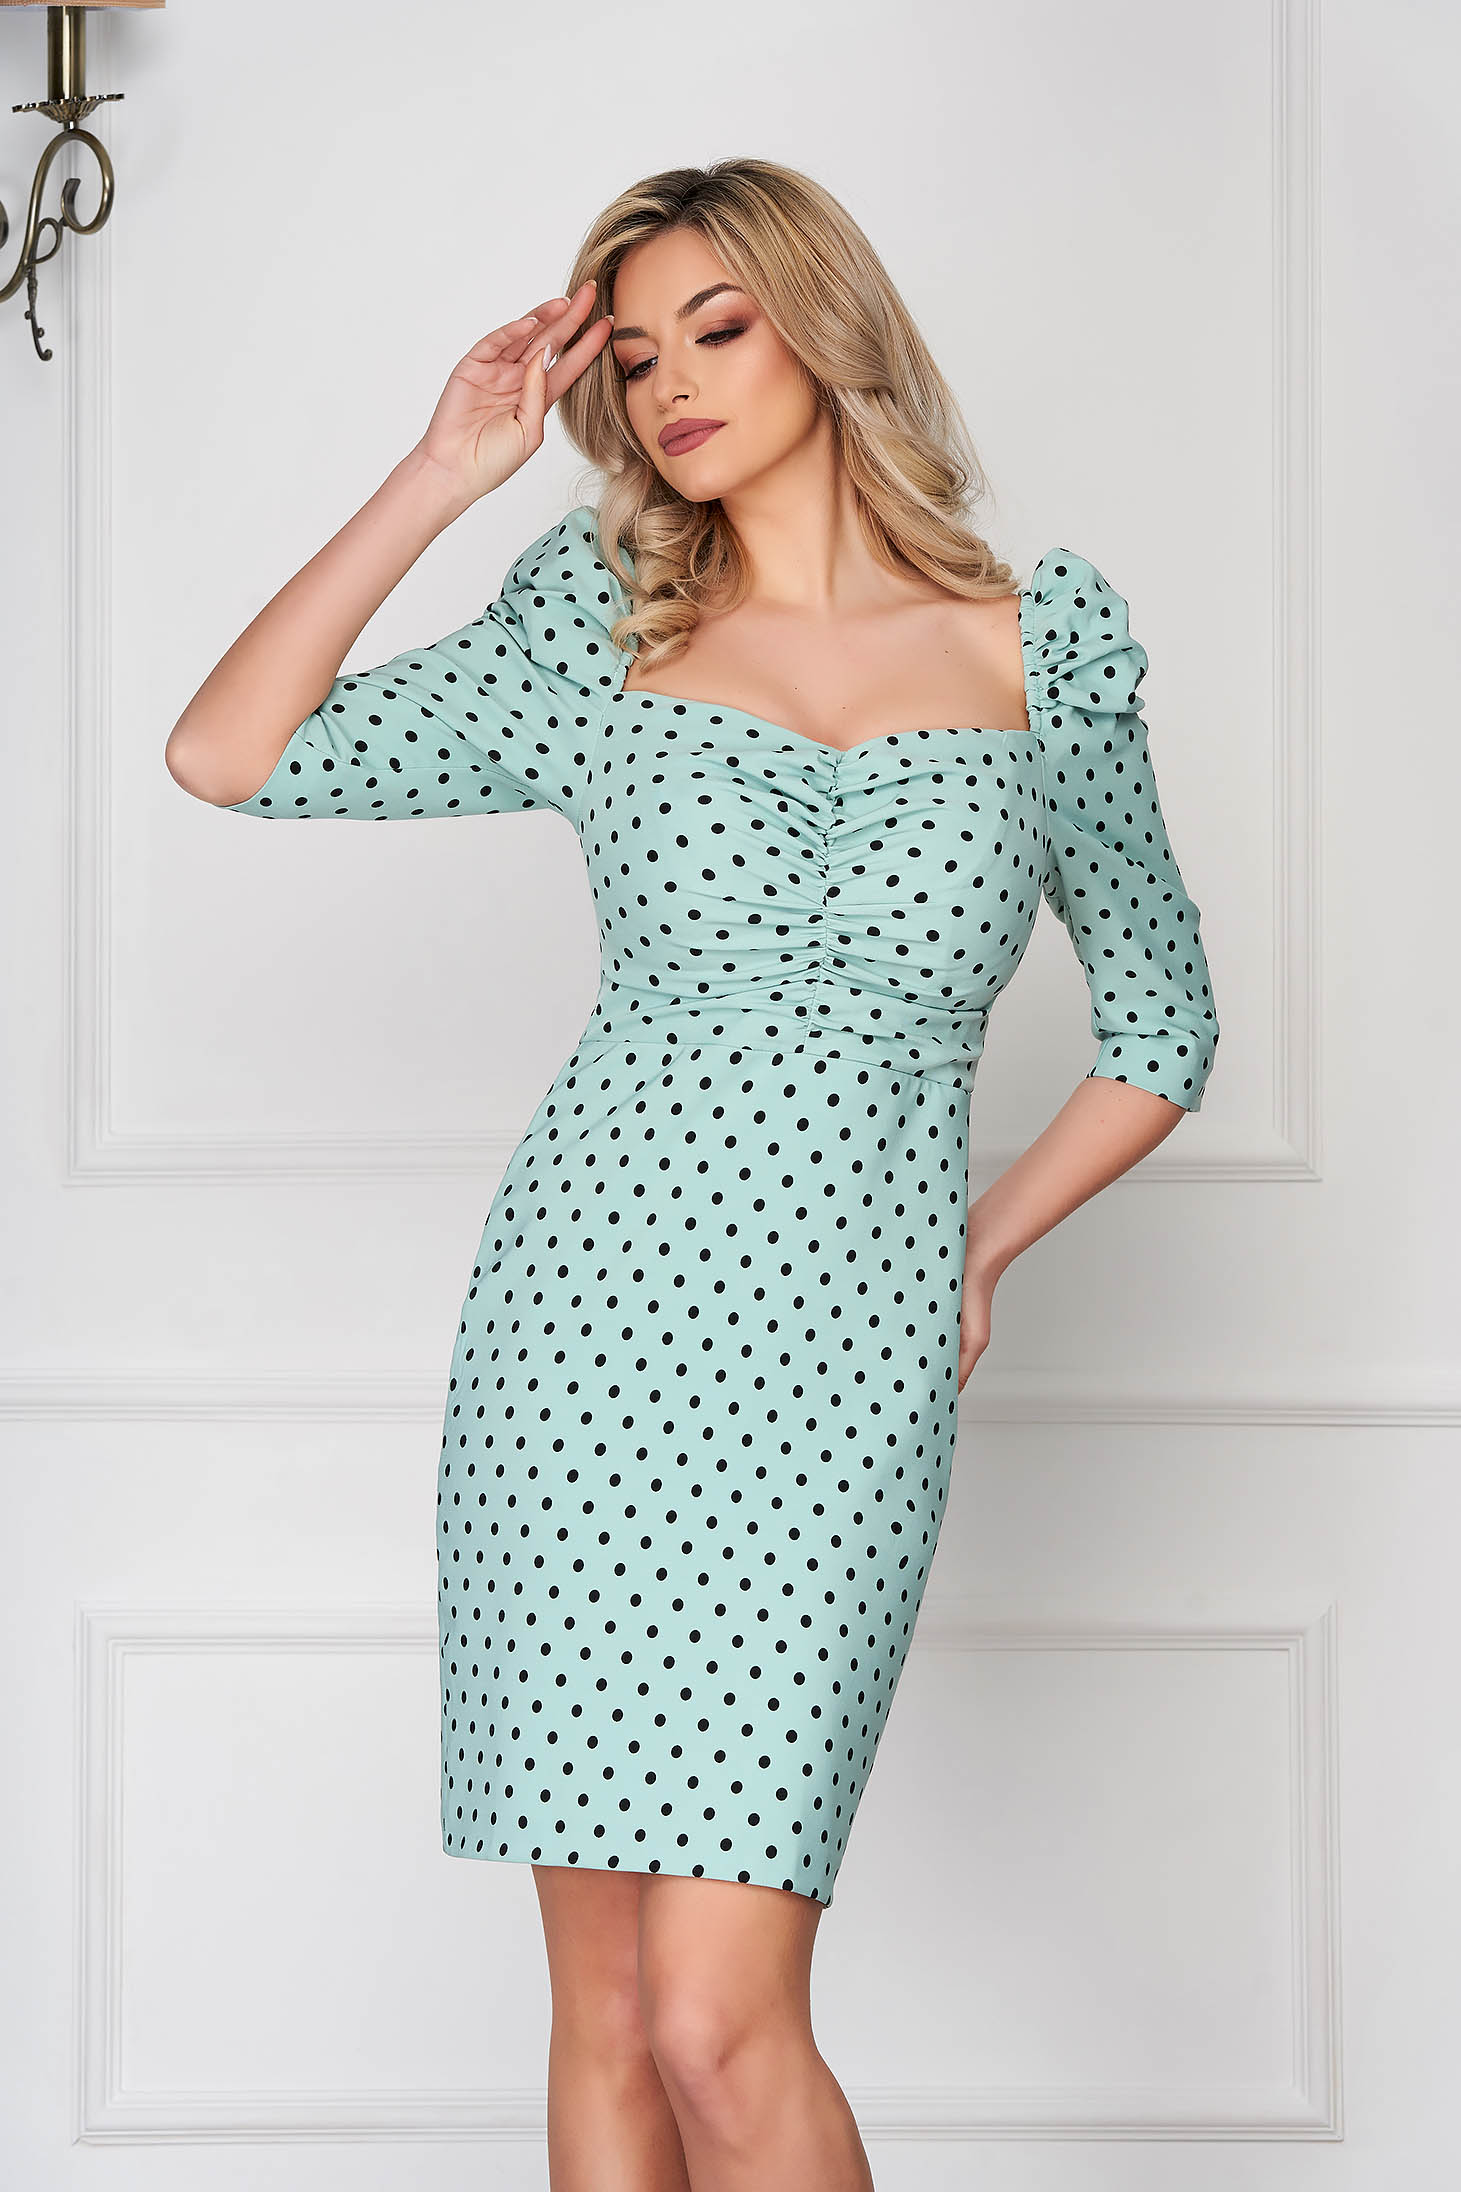 Mint dress short cut daily pencil high shoulders dots print